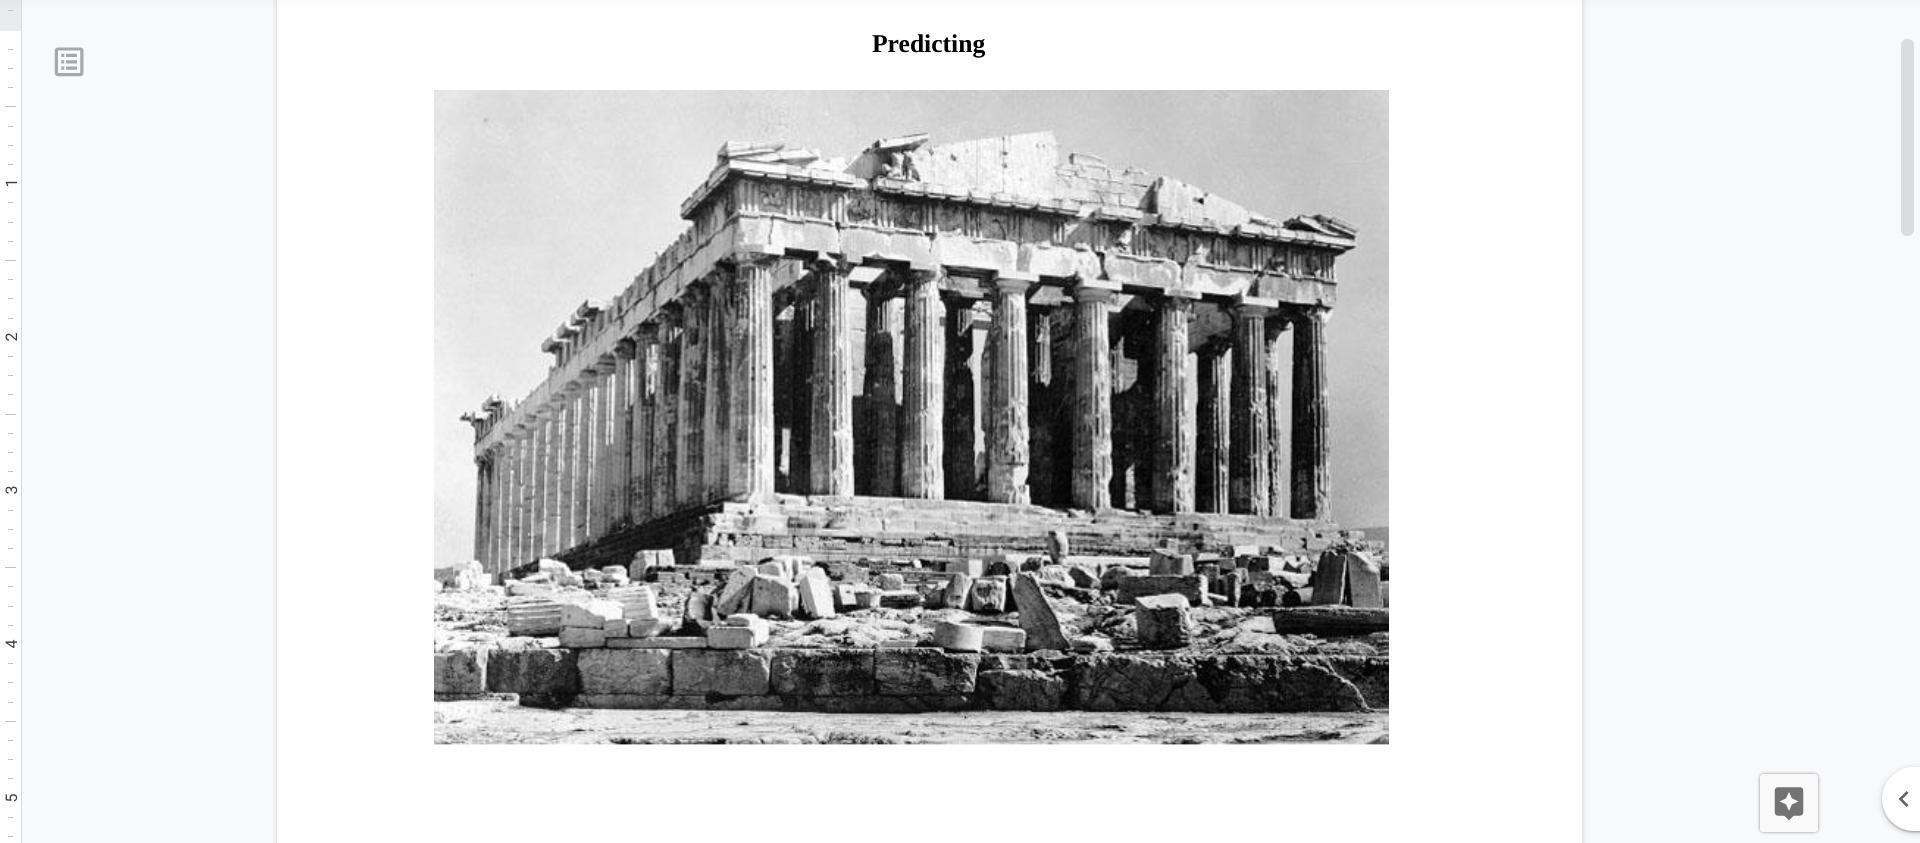 hight resolution of HELP PLEASE I REALLY NEED TO FINISH!! IM IN 6th grade and the worksheet is  called Parthenon - Brainly.com